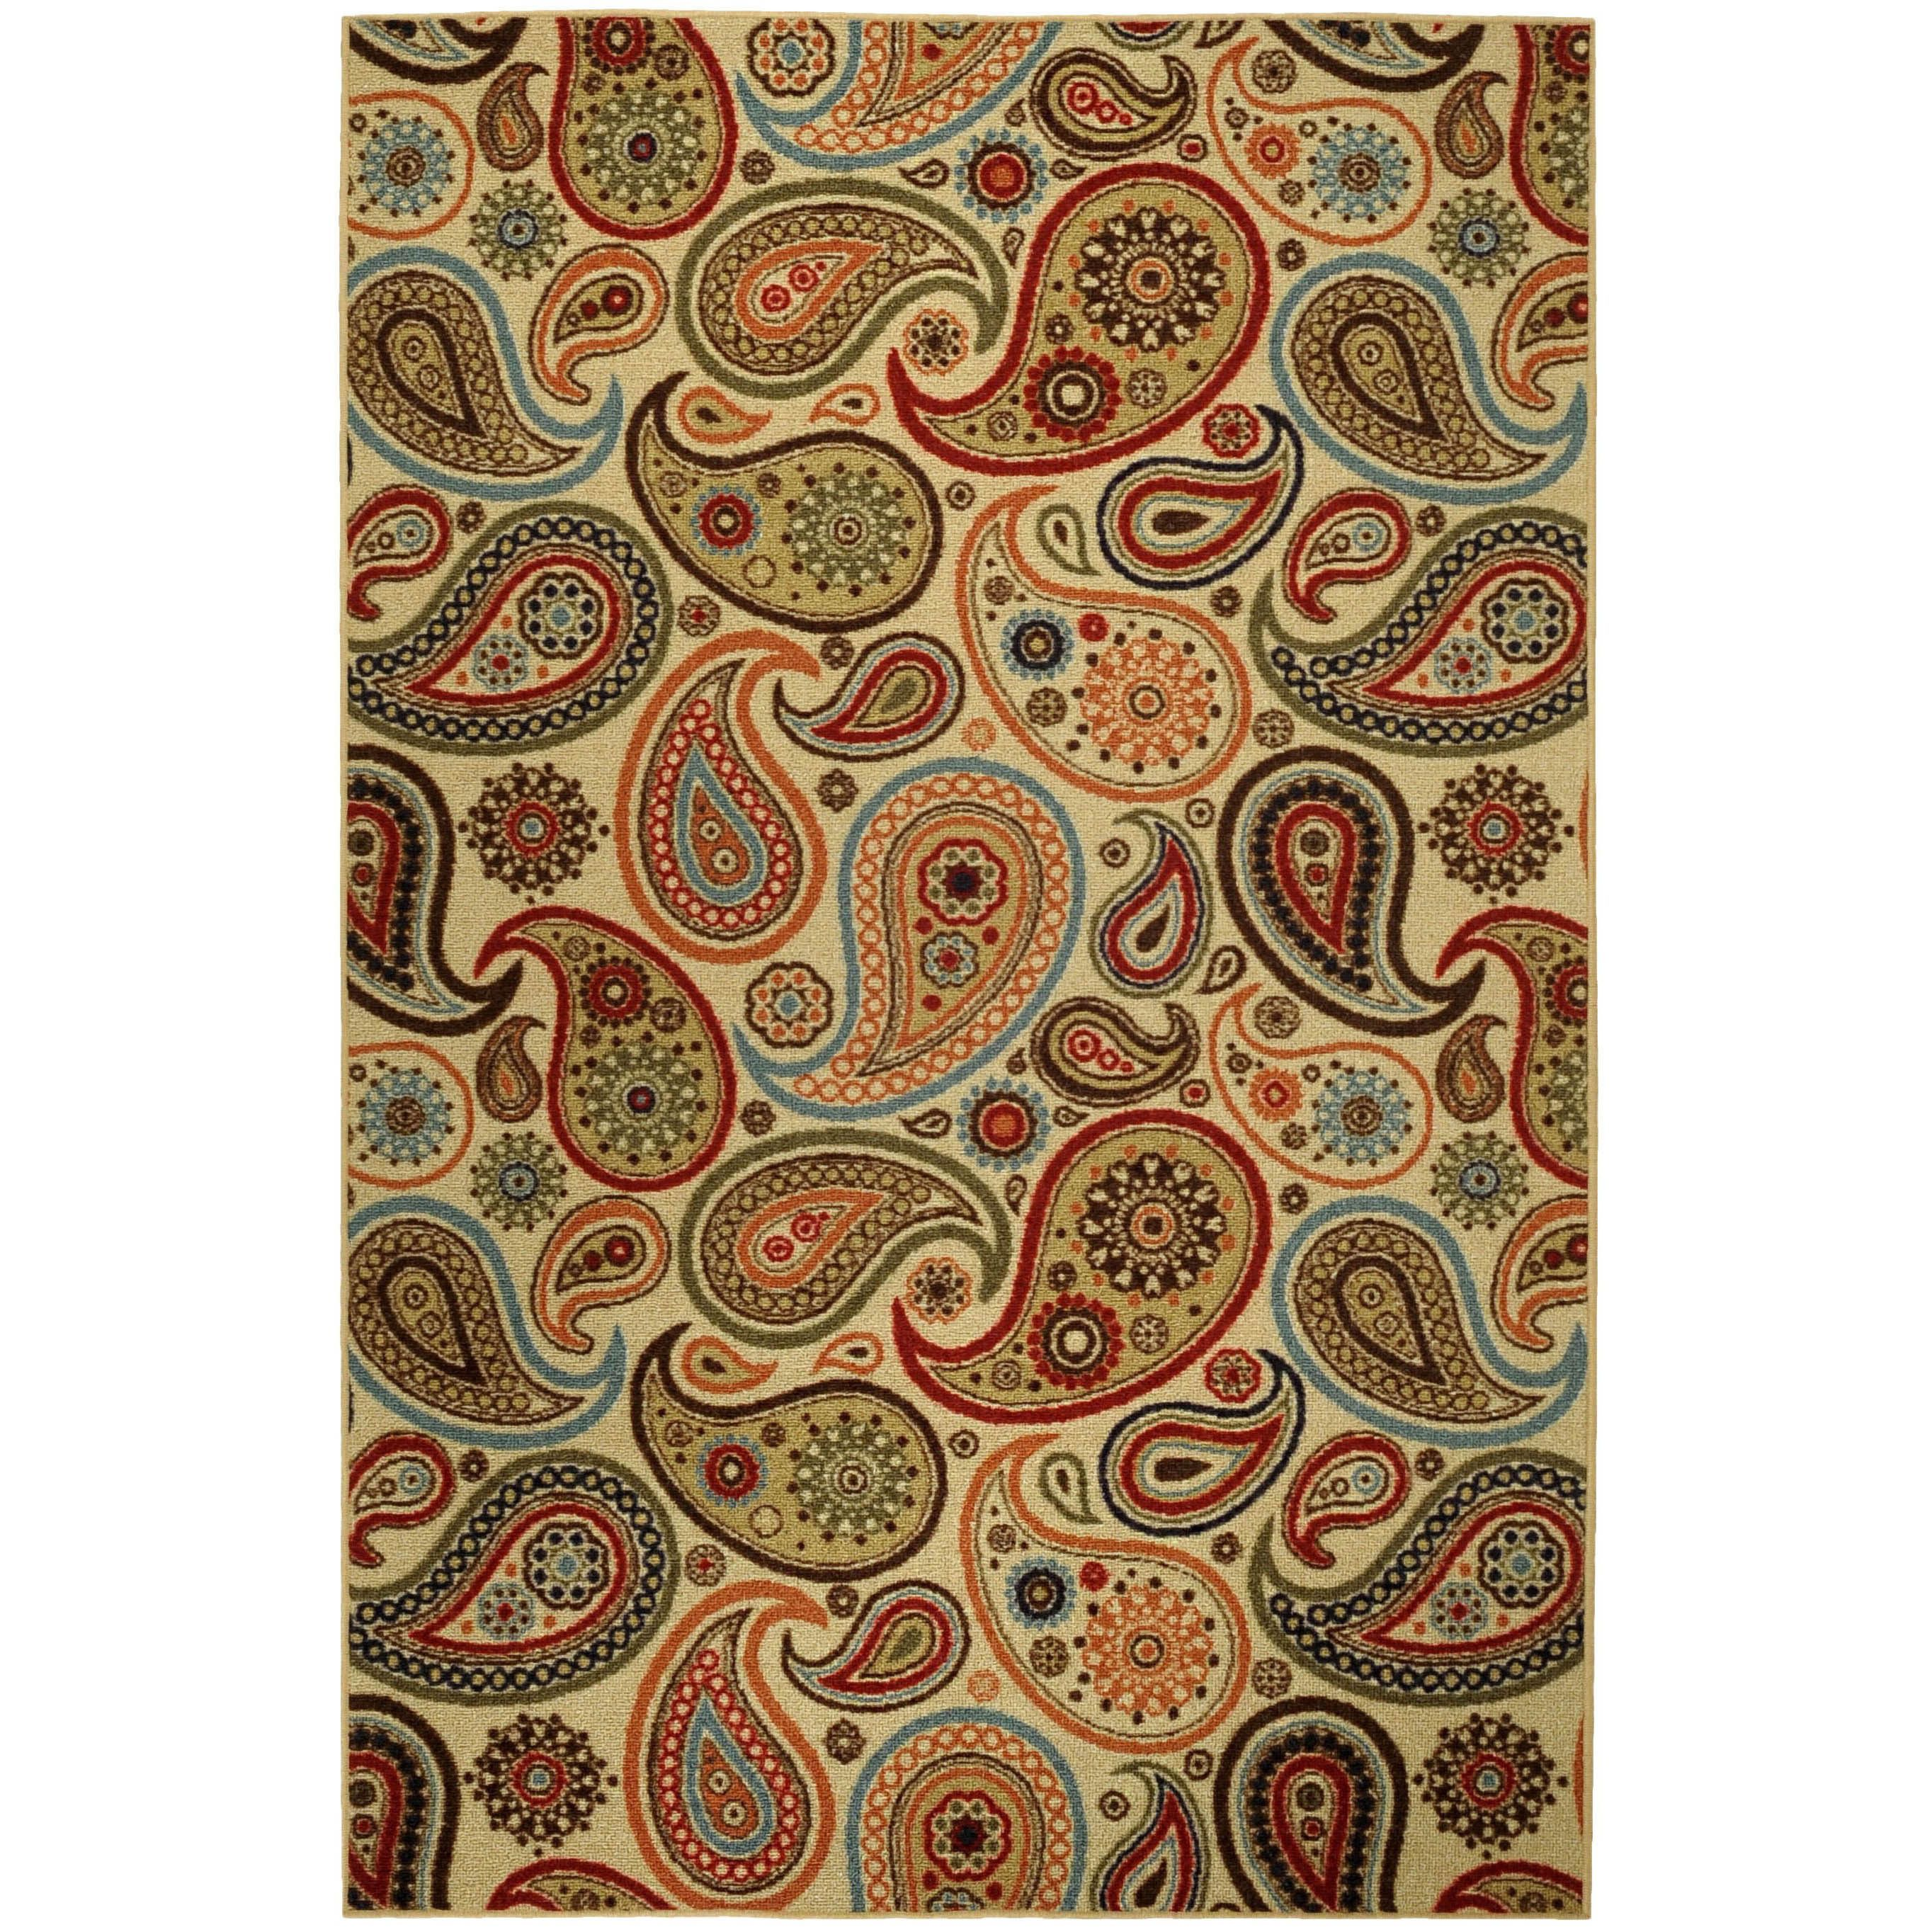 Rubber Back Ivory Paisley Floral Non Skid Area Rug 3 3 X 5